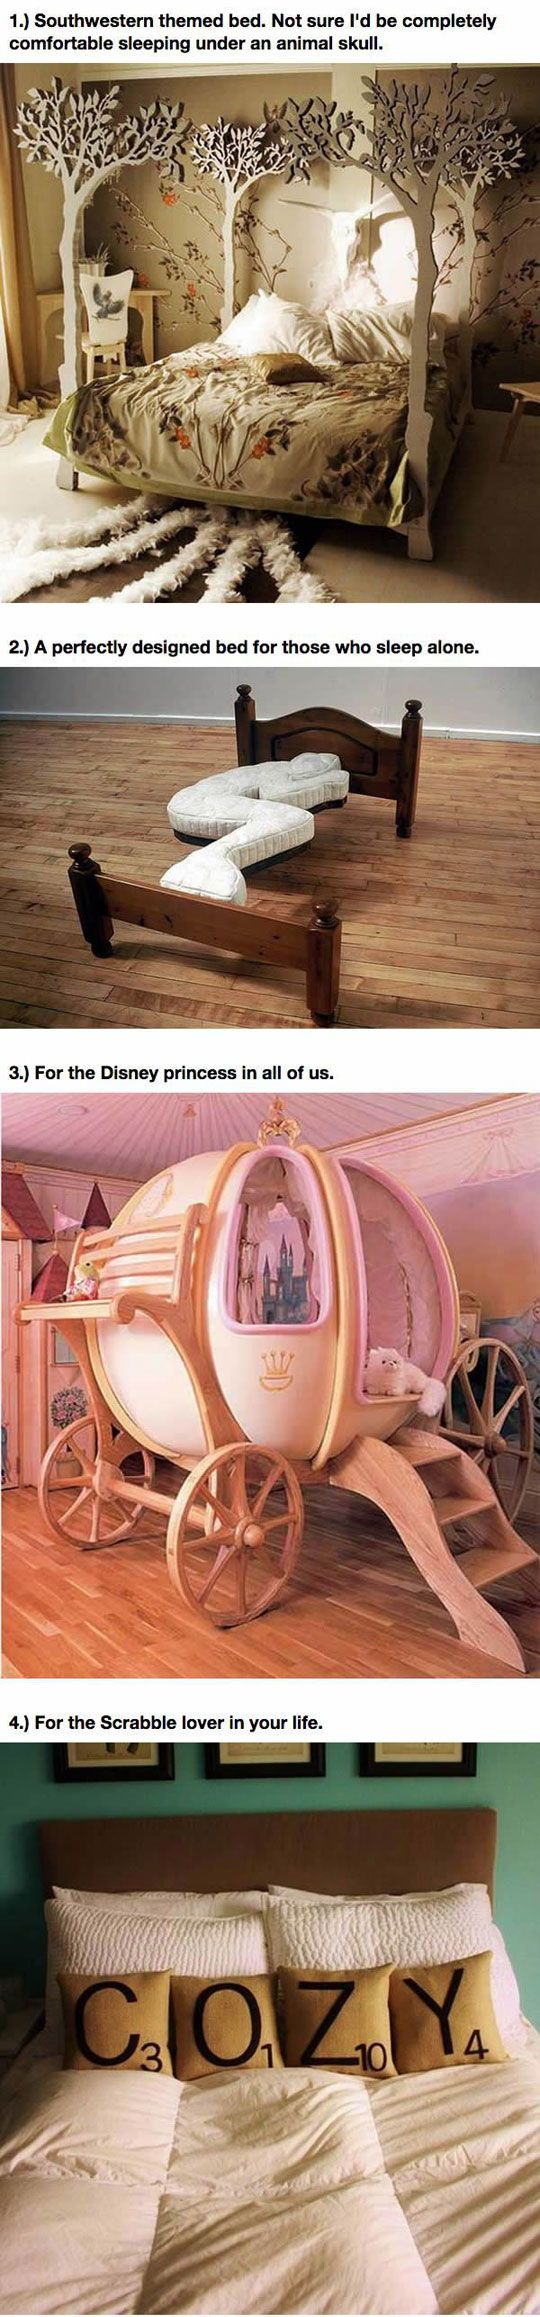 25 amazing beds will make you wish it was nap time | letto ad ... - Letto Carrozza Disney